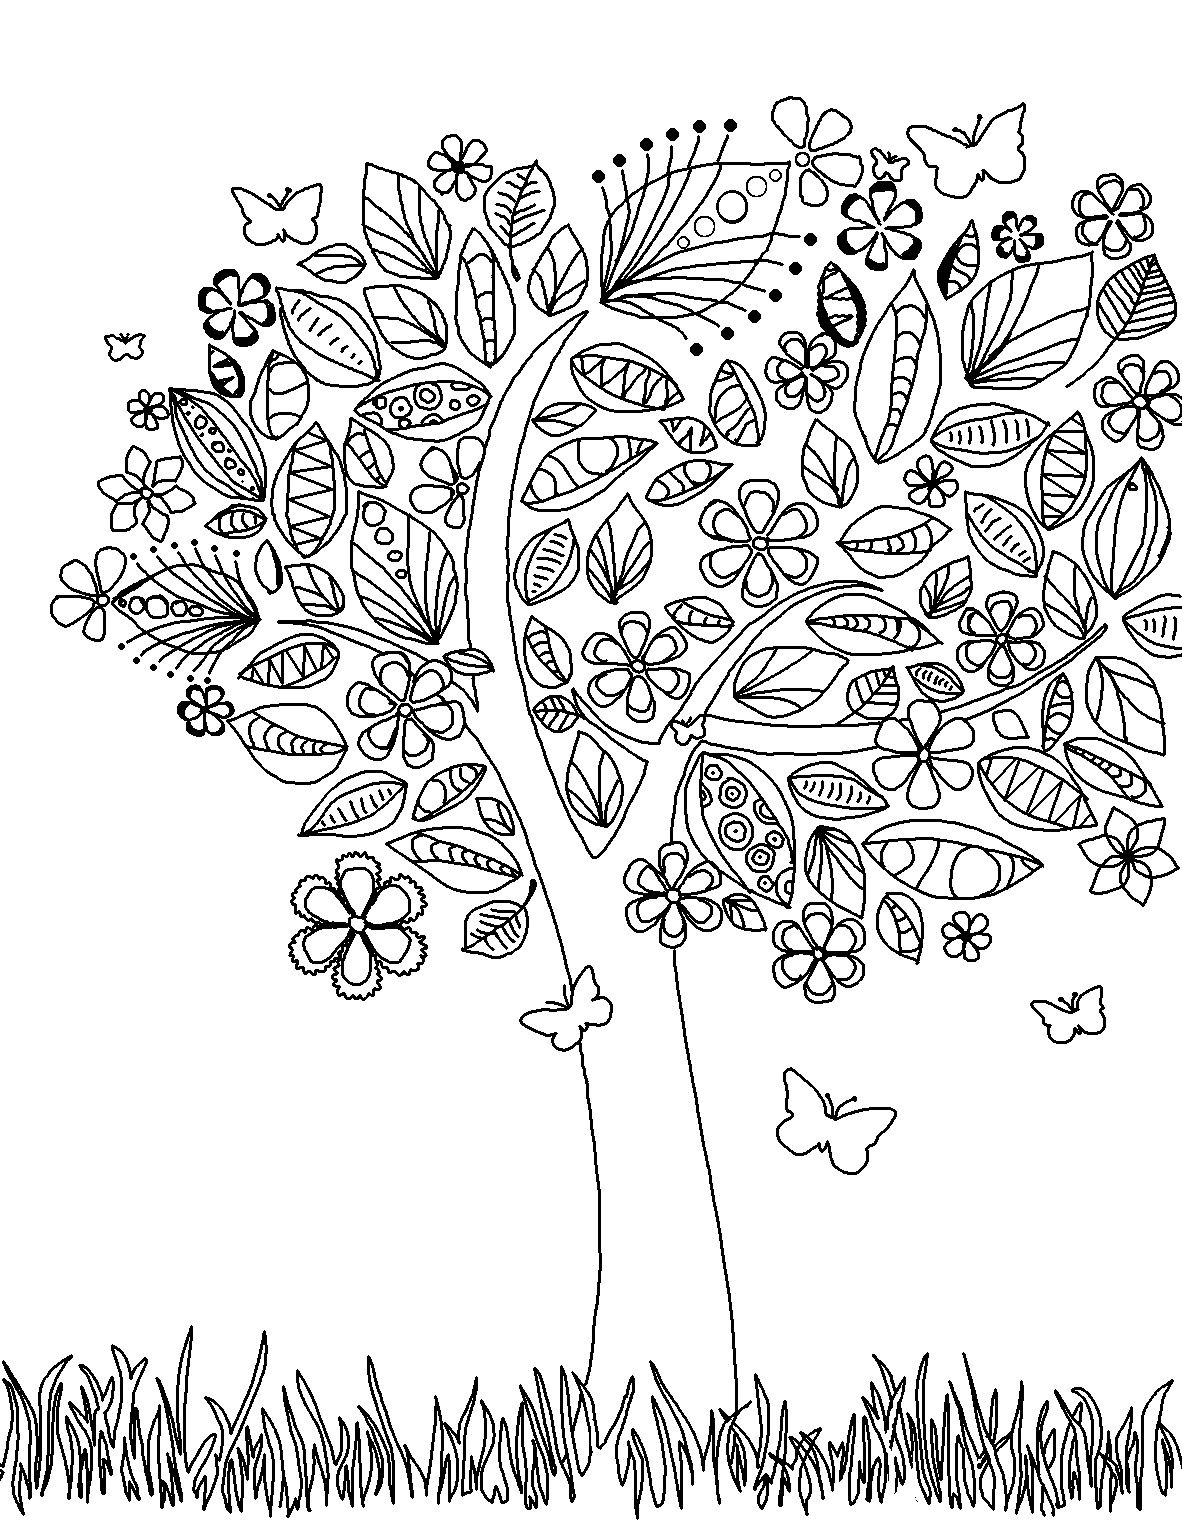 Coloring book printouts for adults - Find This Pin And More On Coloring For Adults